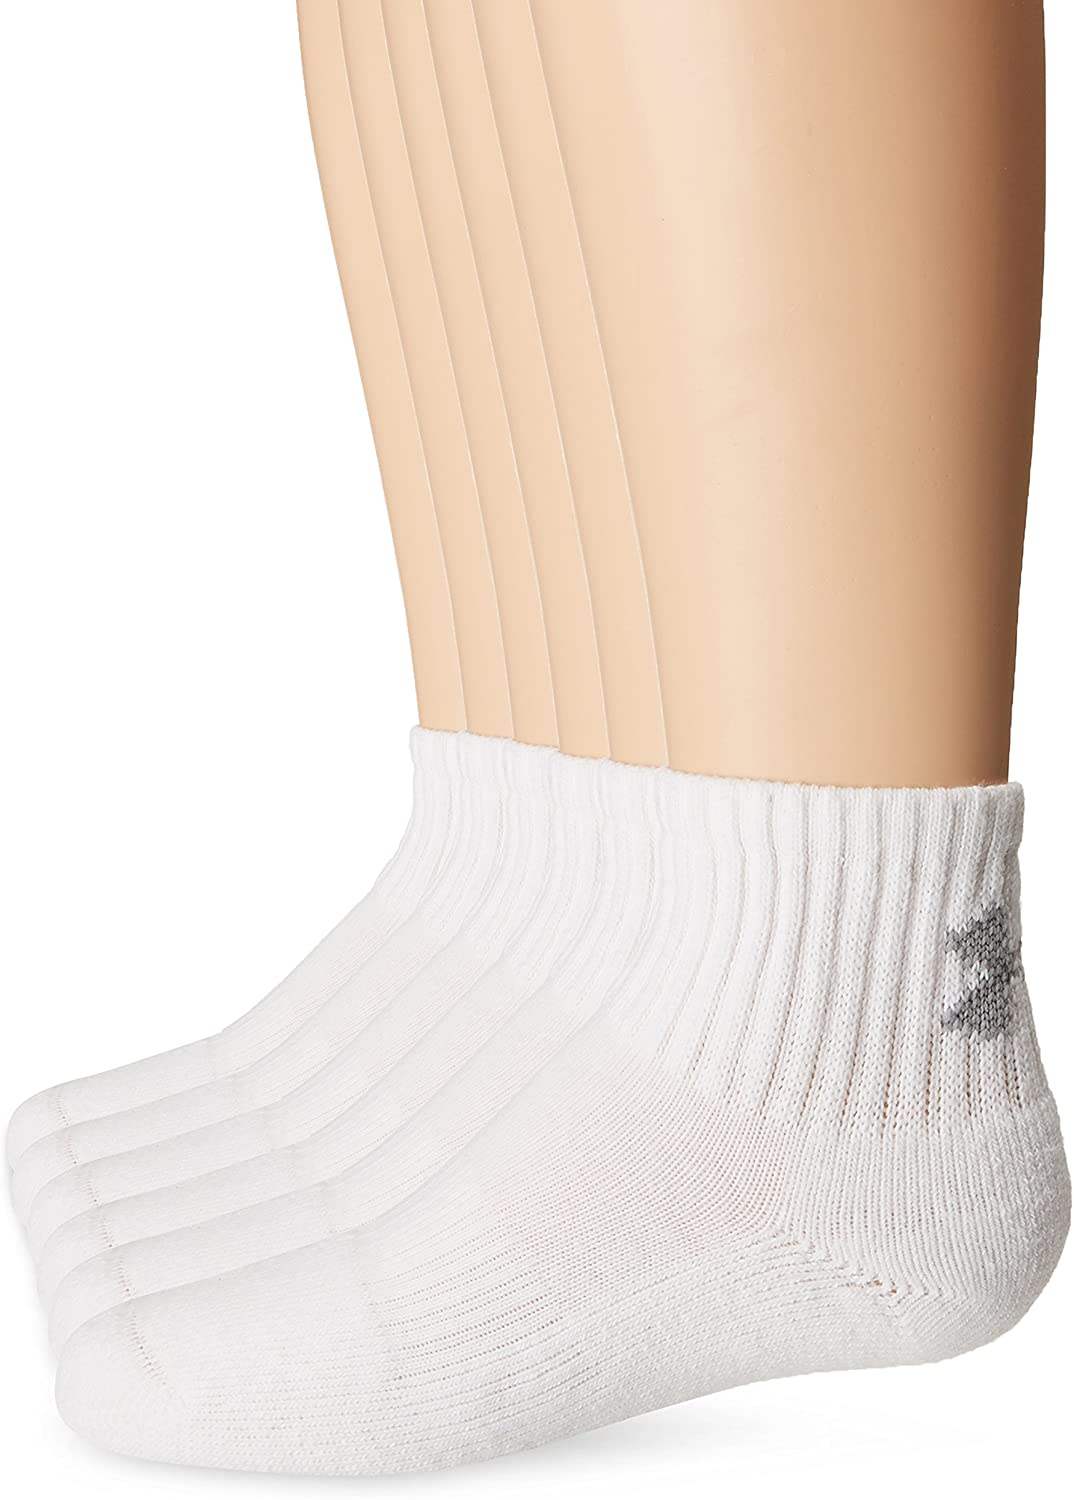 Under Armour Youth Cotton Quarter Socks, 6-pairs